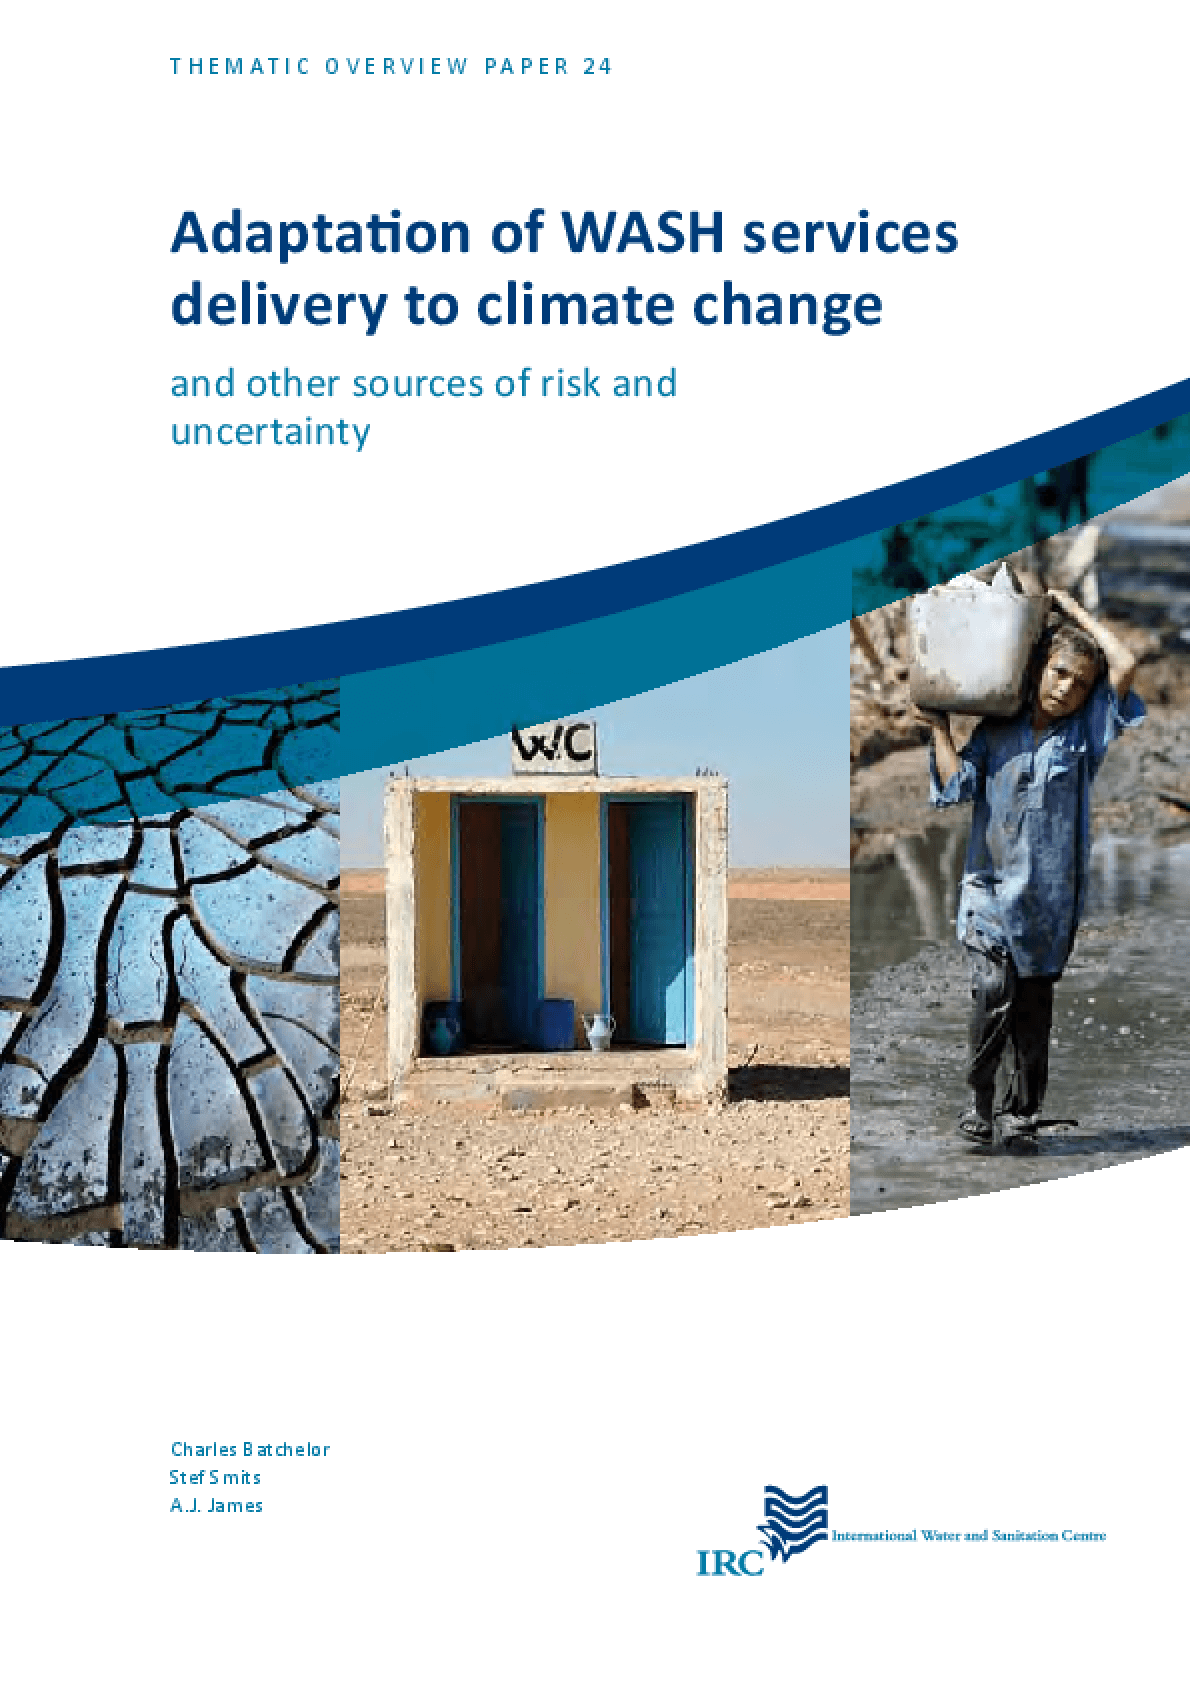 Adaptation of WASH Services Delivery to Climate Change and Other Sources of Risk and Uncertainty